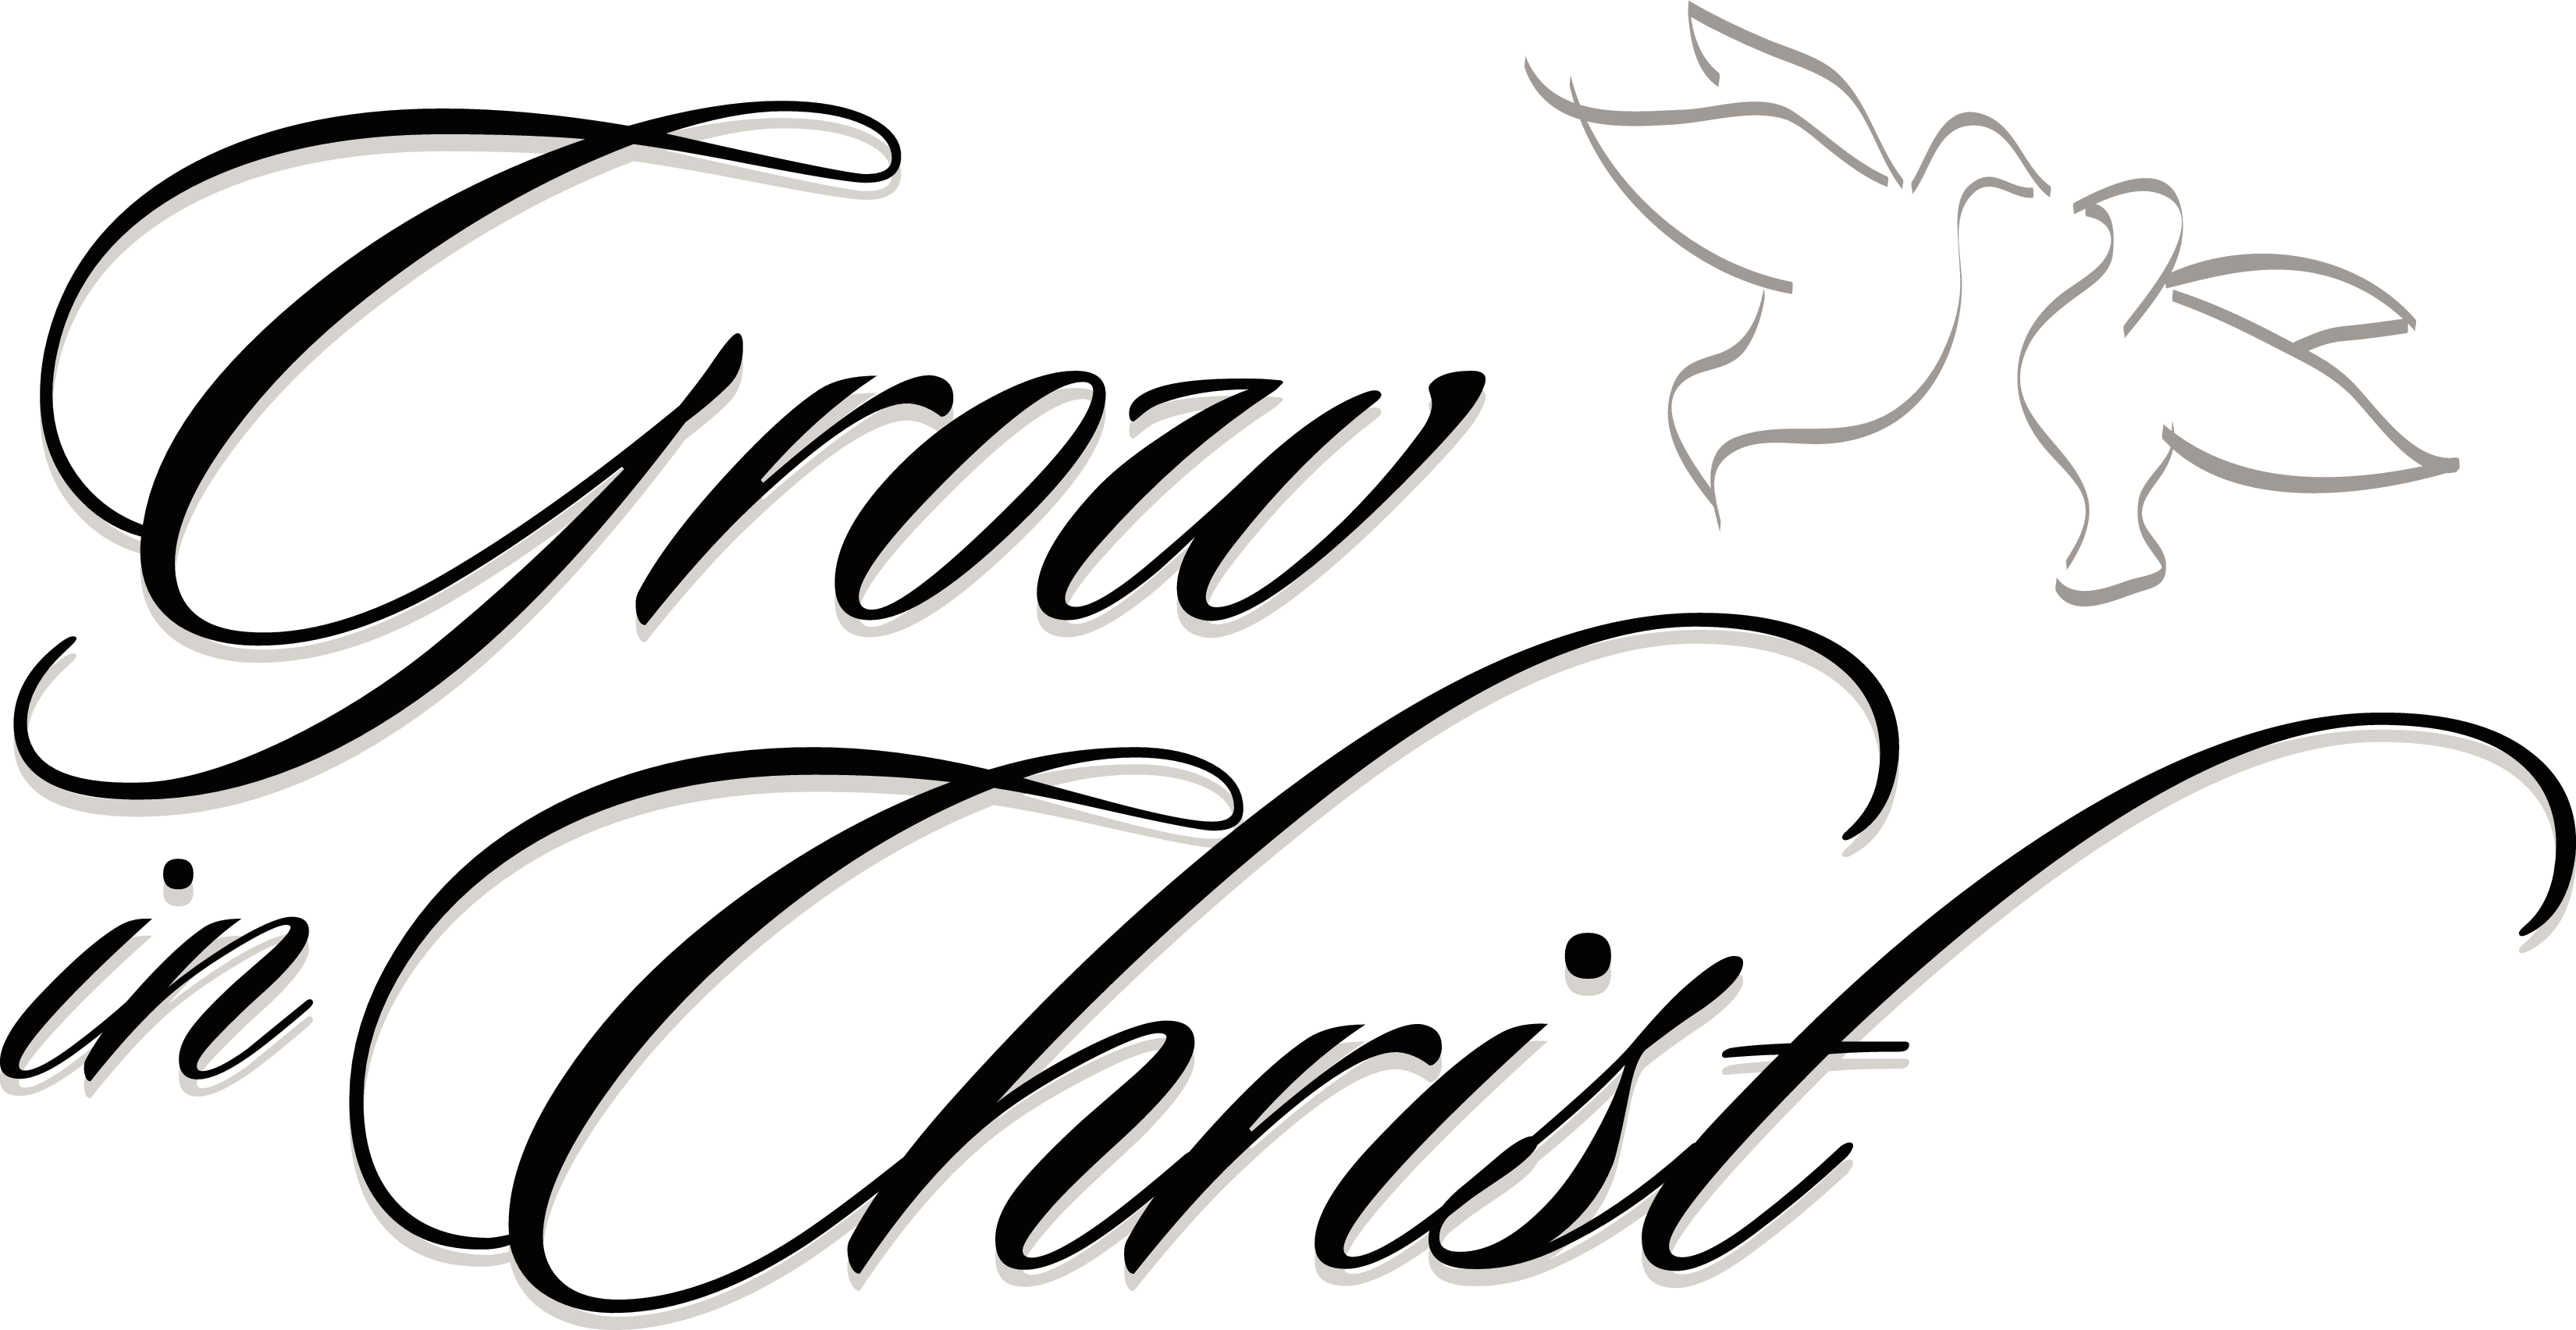 collection of christian. Notepad clipart black and white